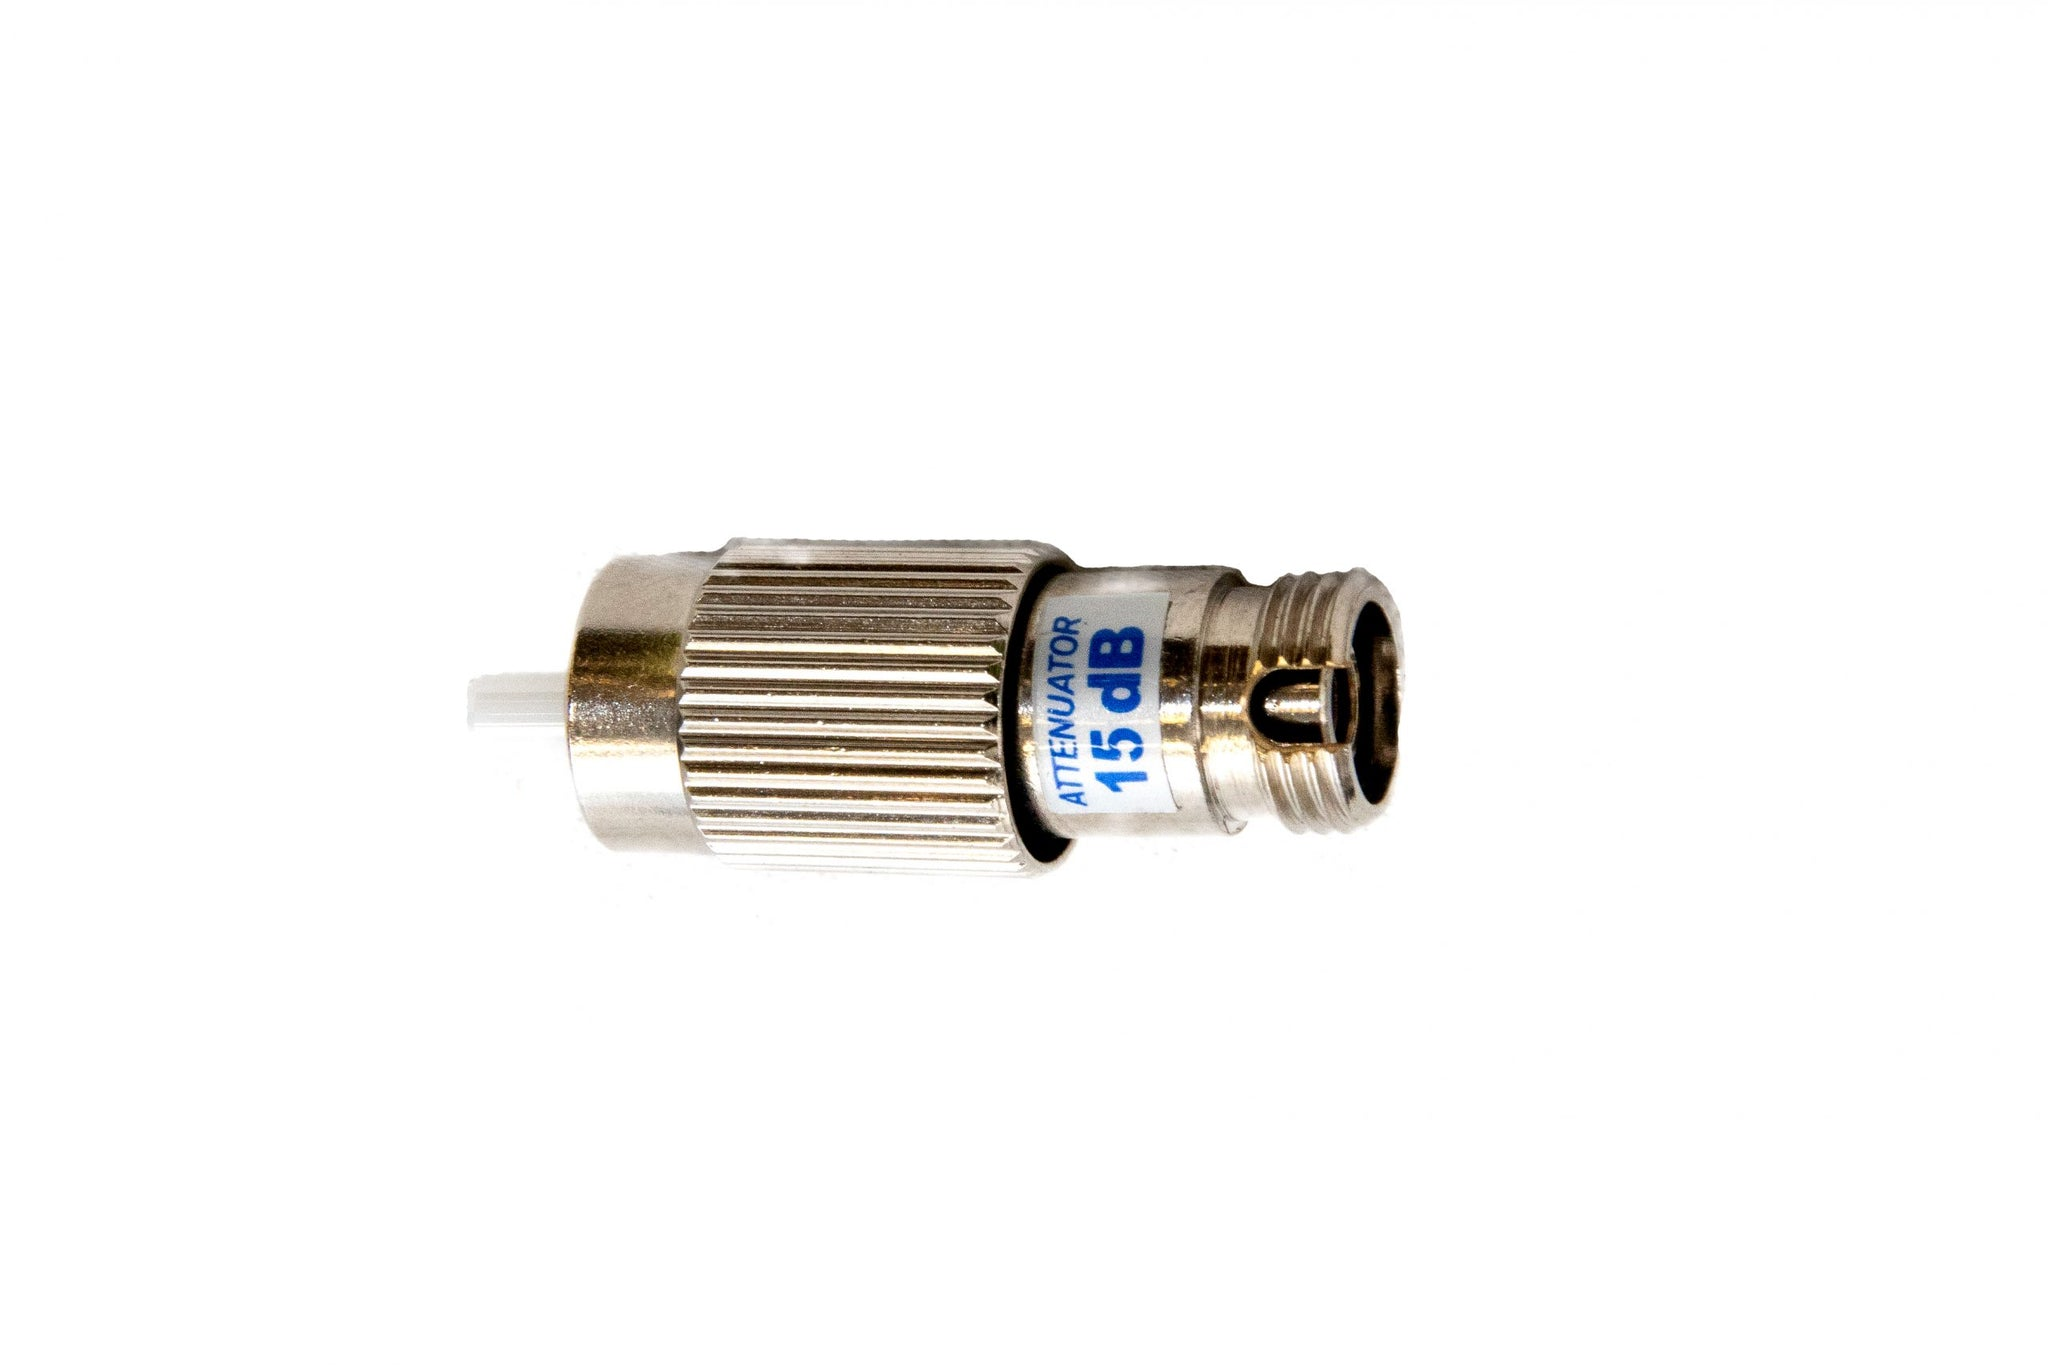 15db Optical Attenuator